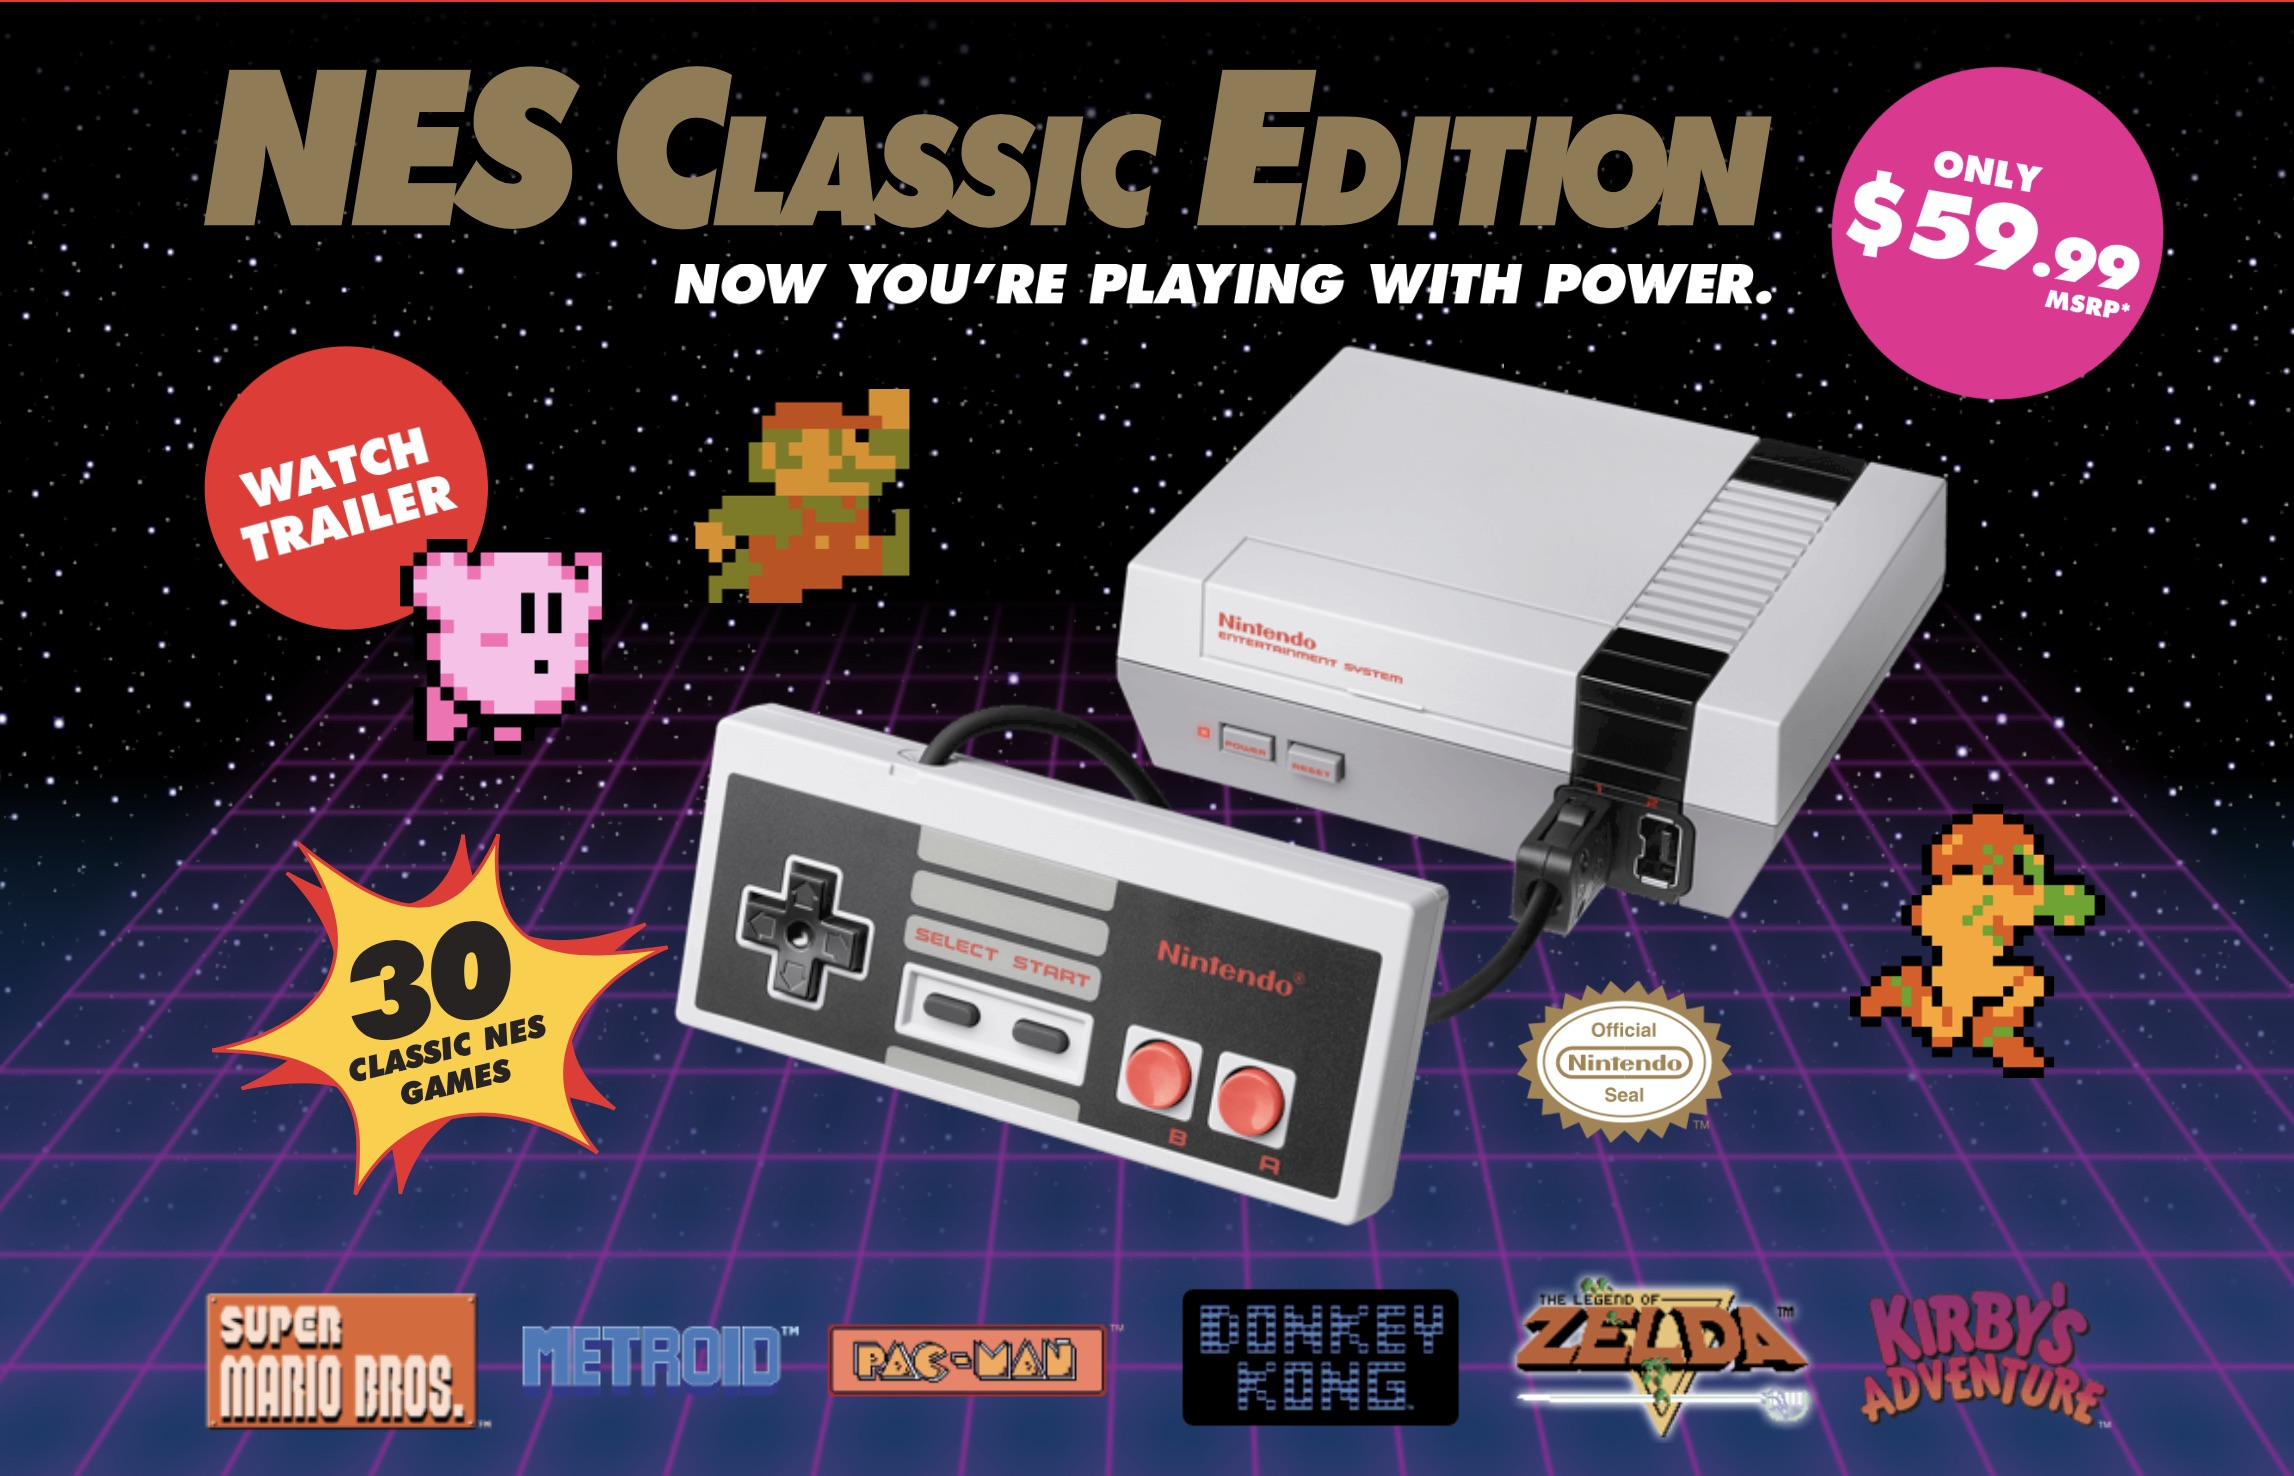 Nintendo's NES Classic Edition Retro Games Console Returns